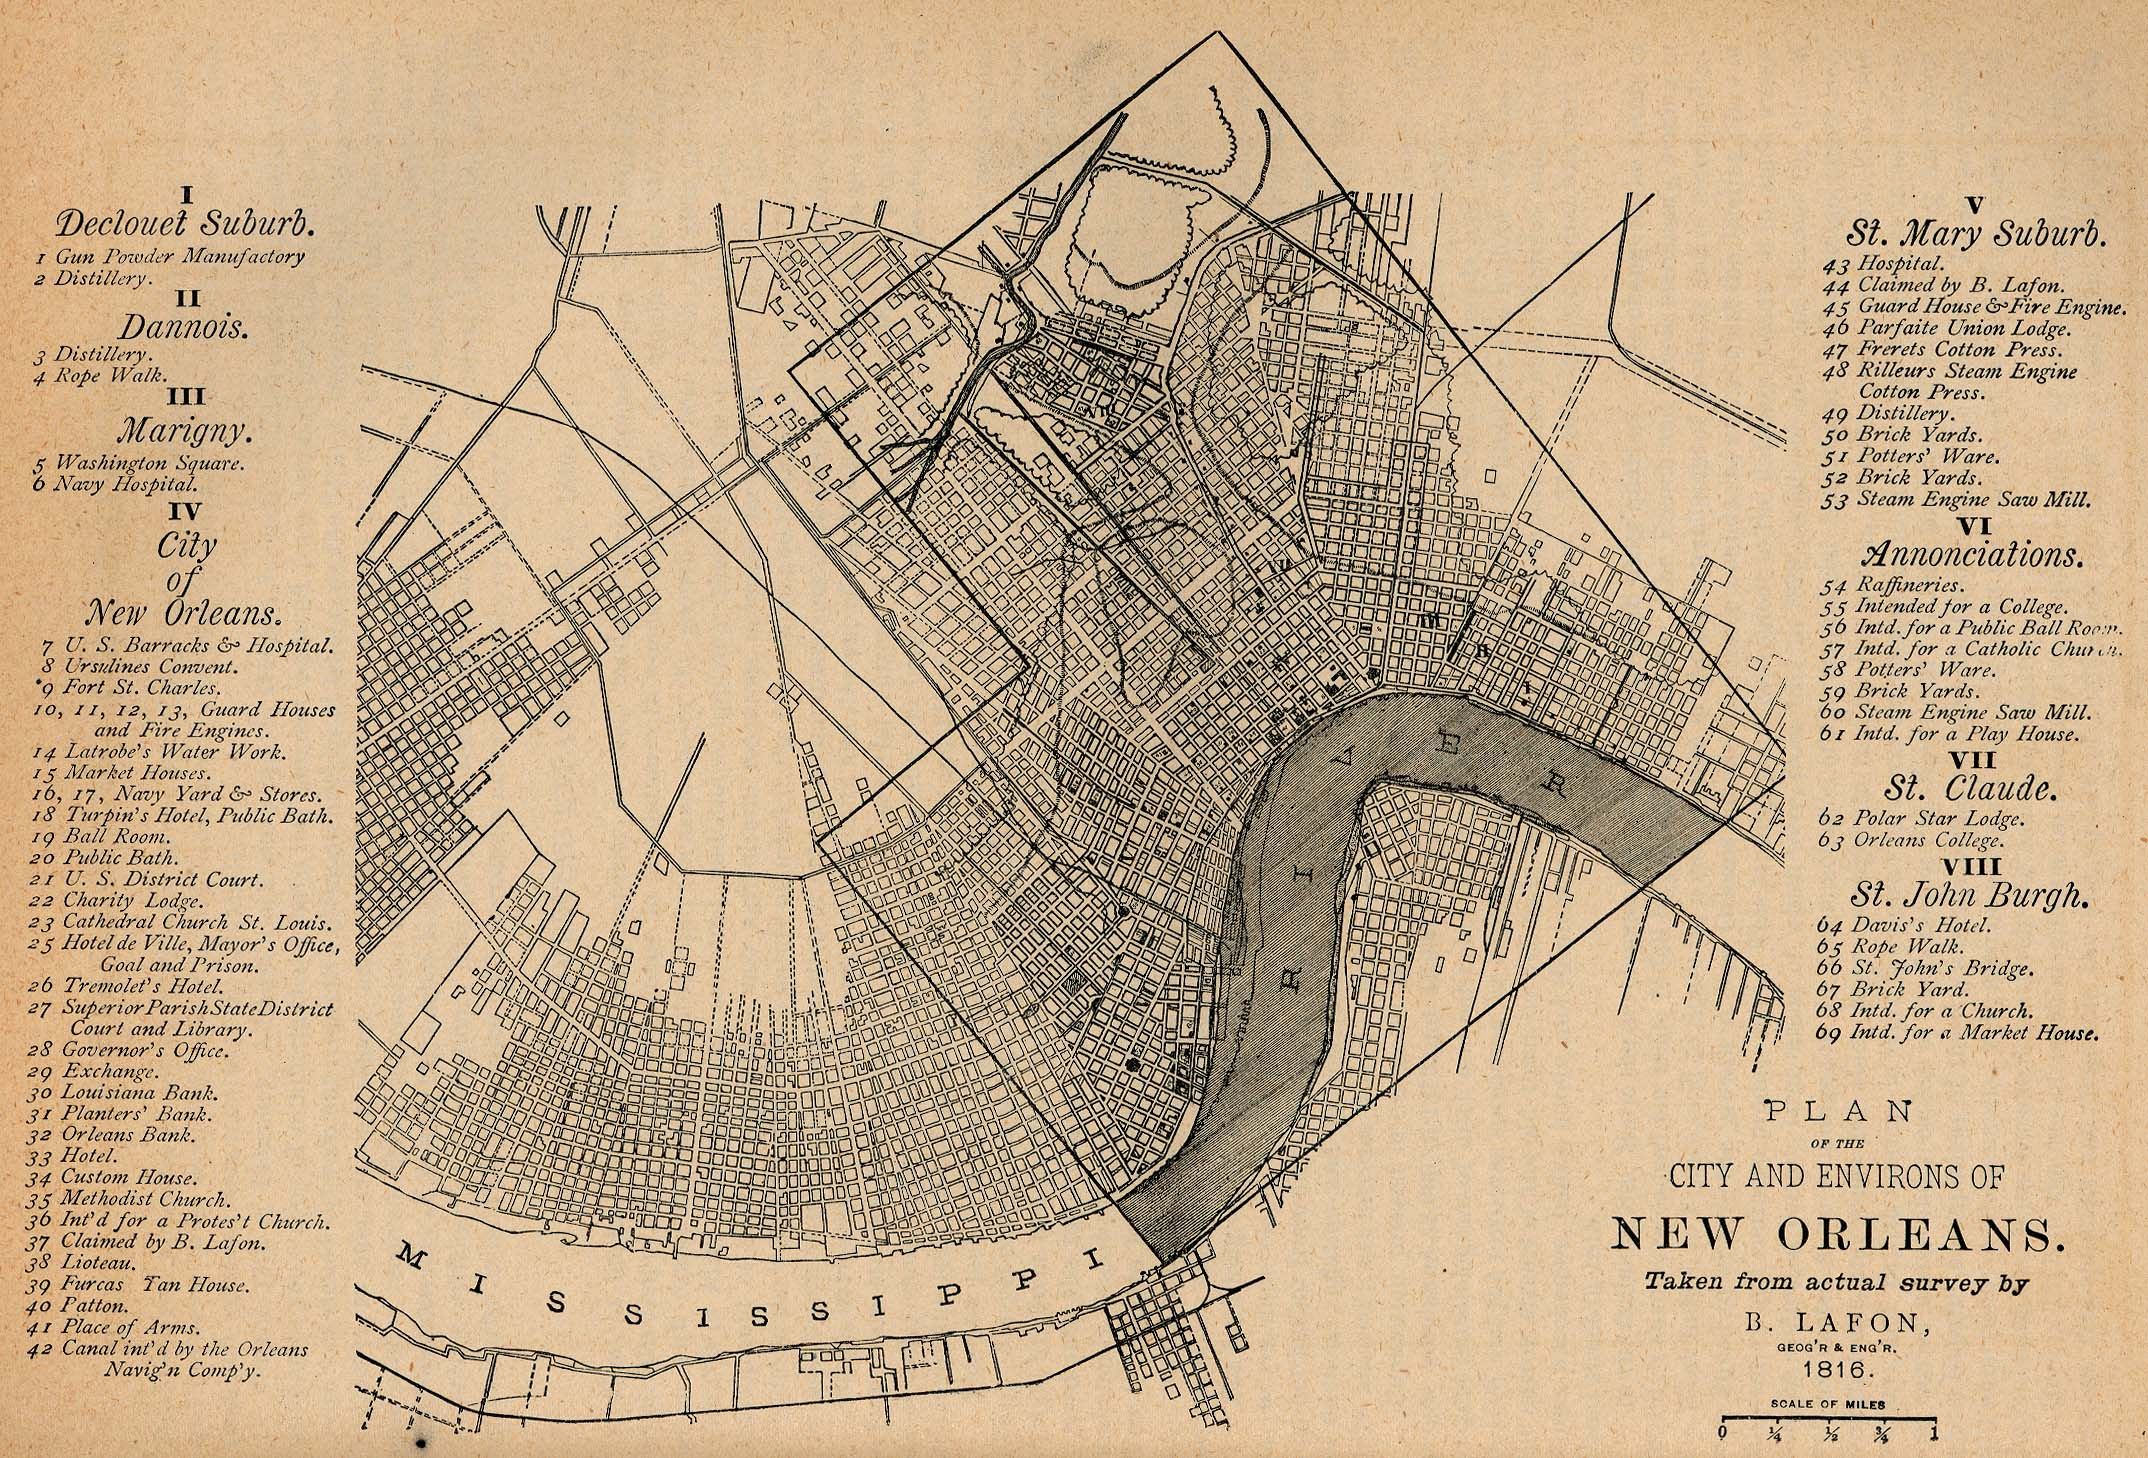 Map of New Orleans, 1816, as reprinted in 1880s with more recent developments contrasted.